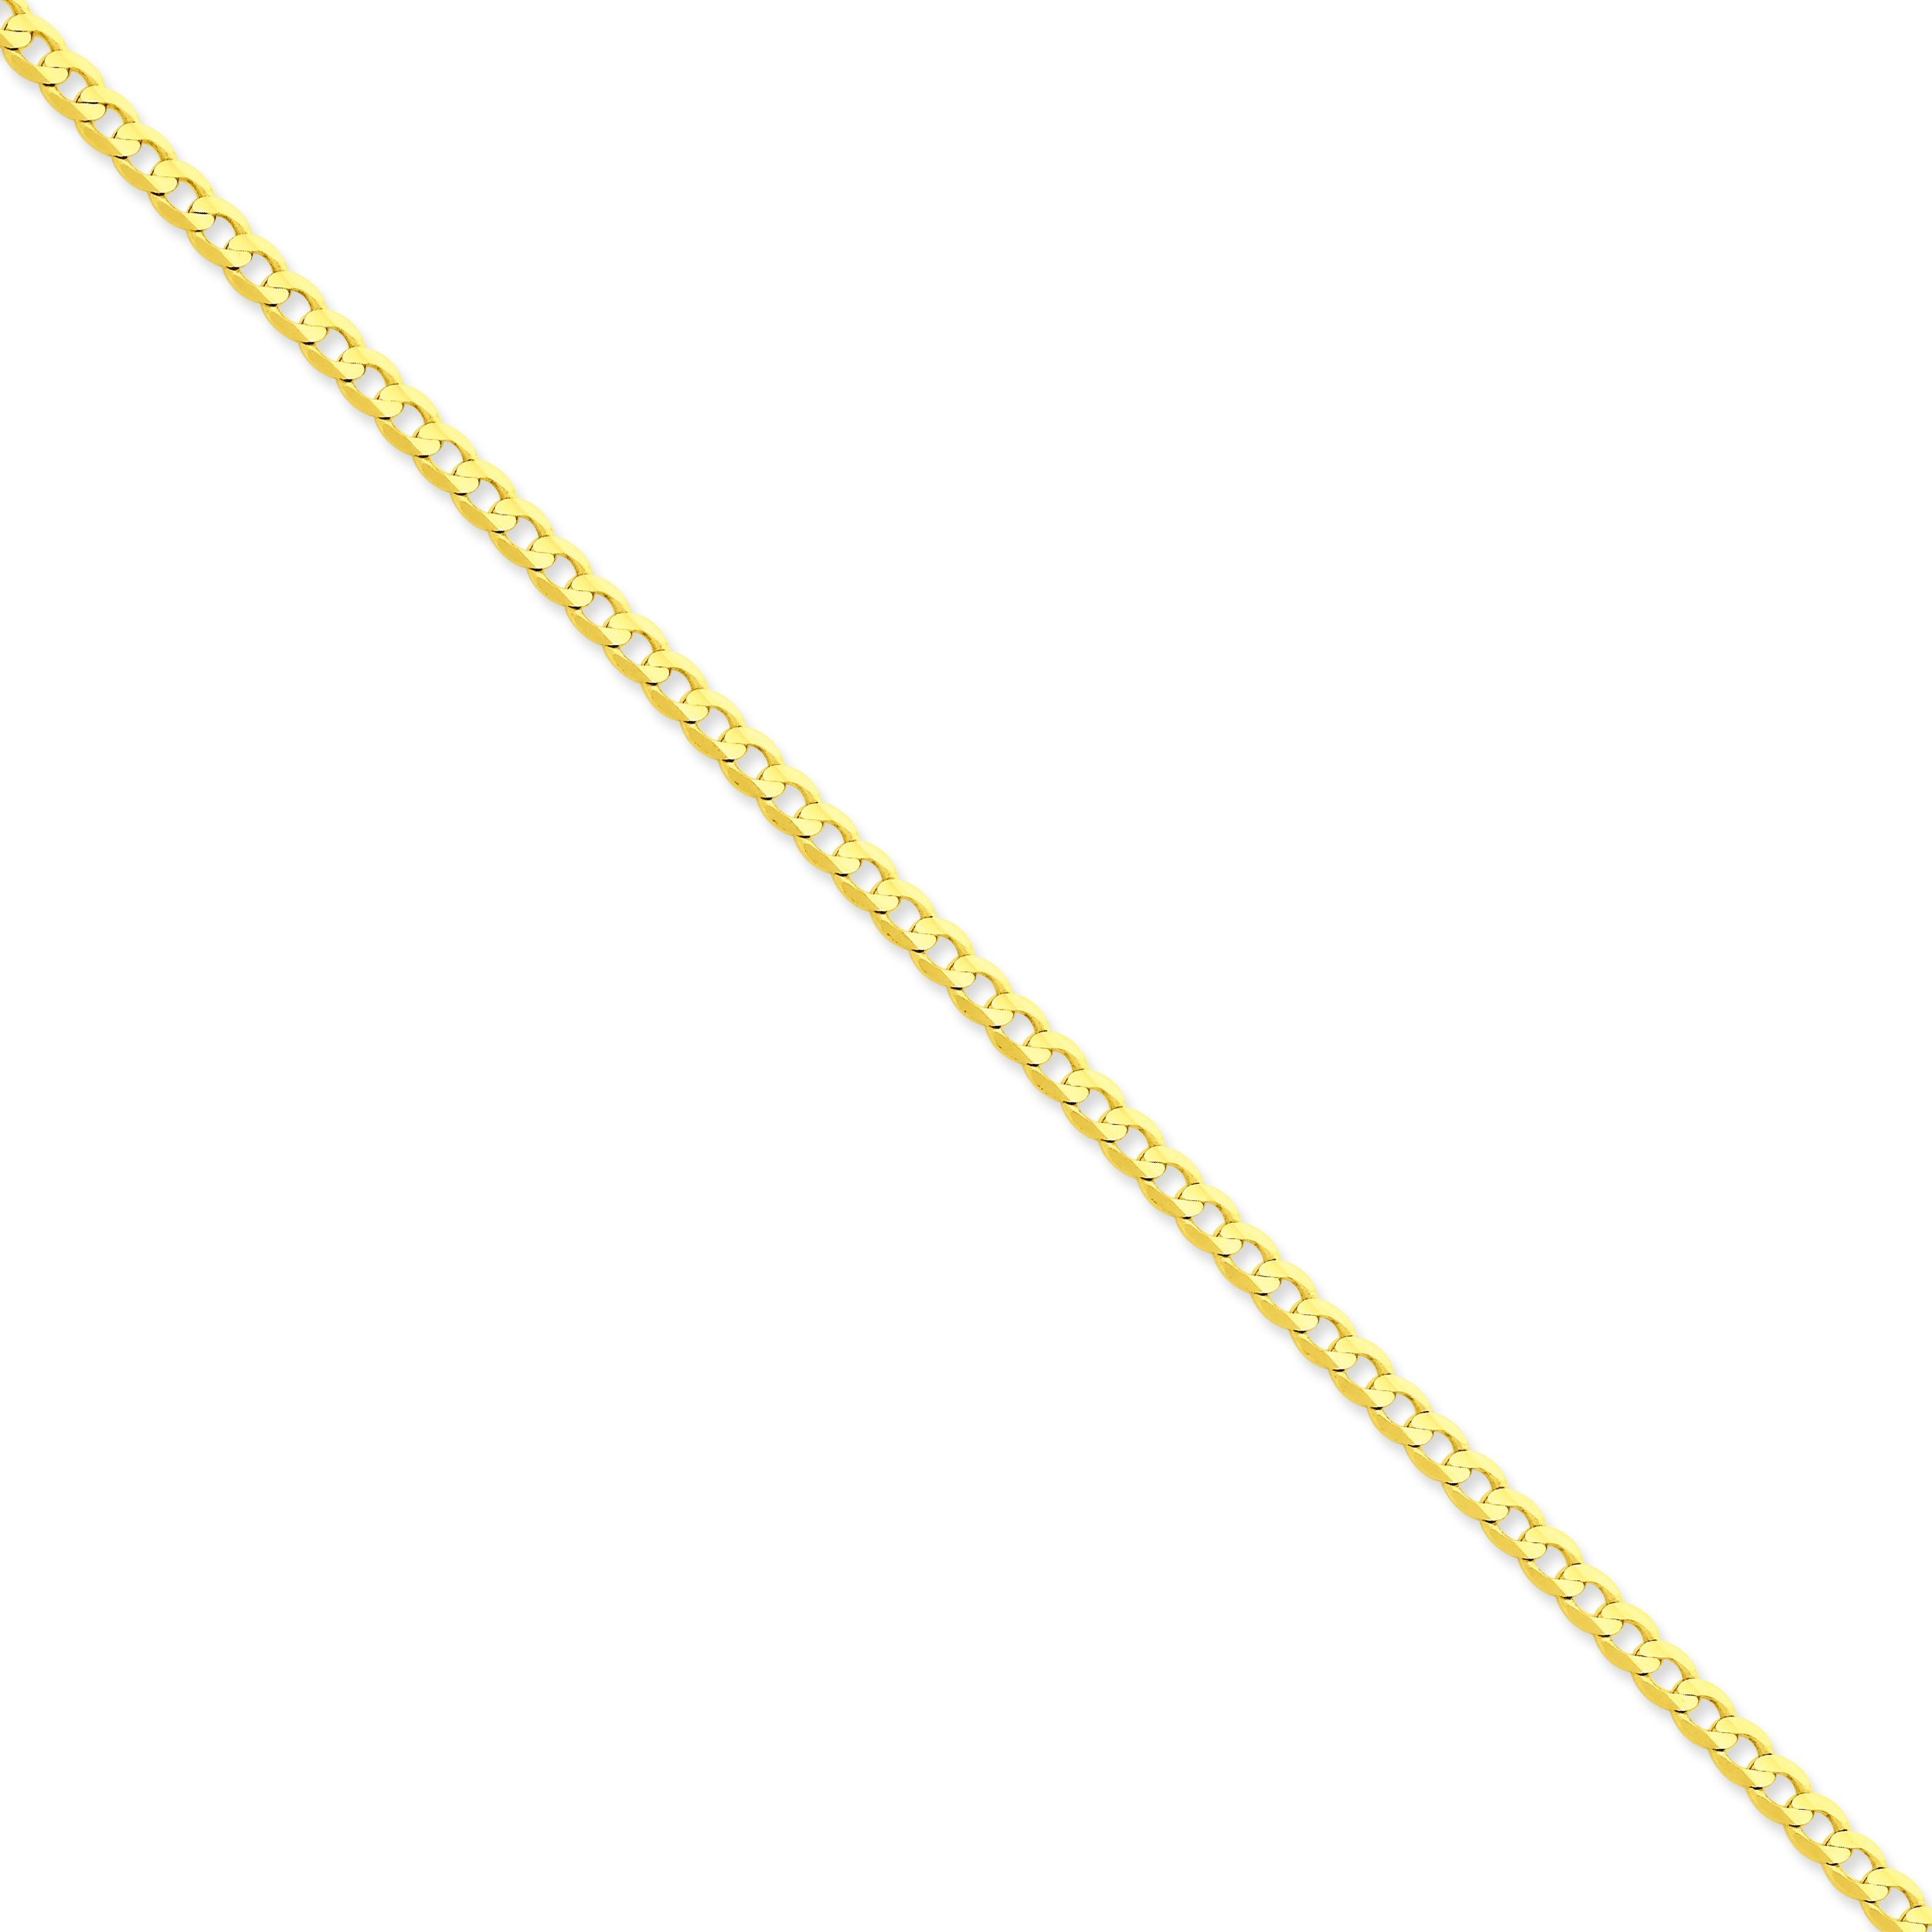 14k Yellow Gold 7 inch 3.80 mm Open Concave Curb Chain Bracelet